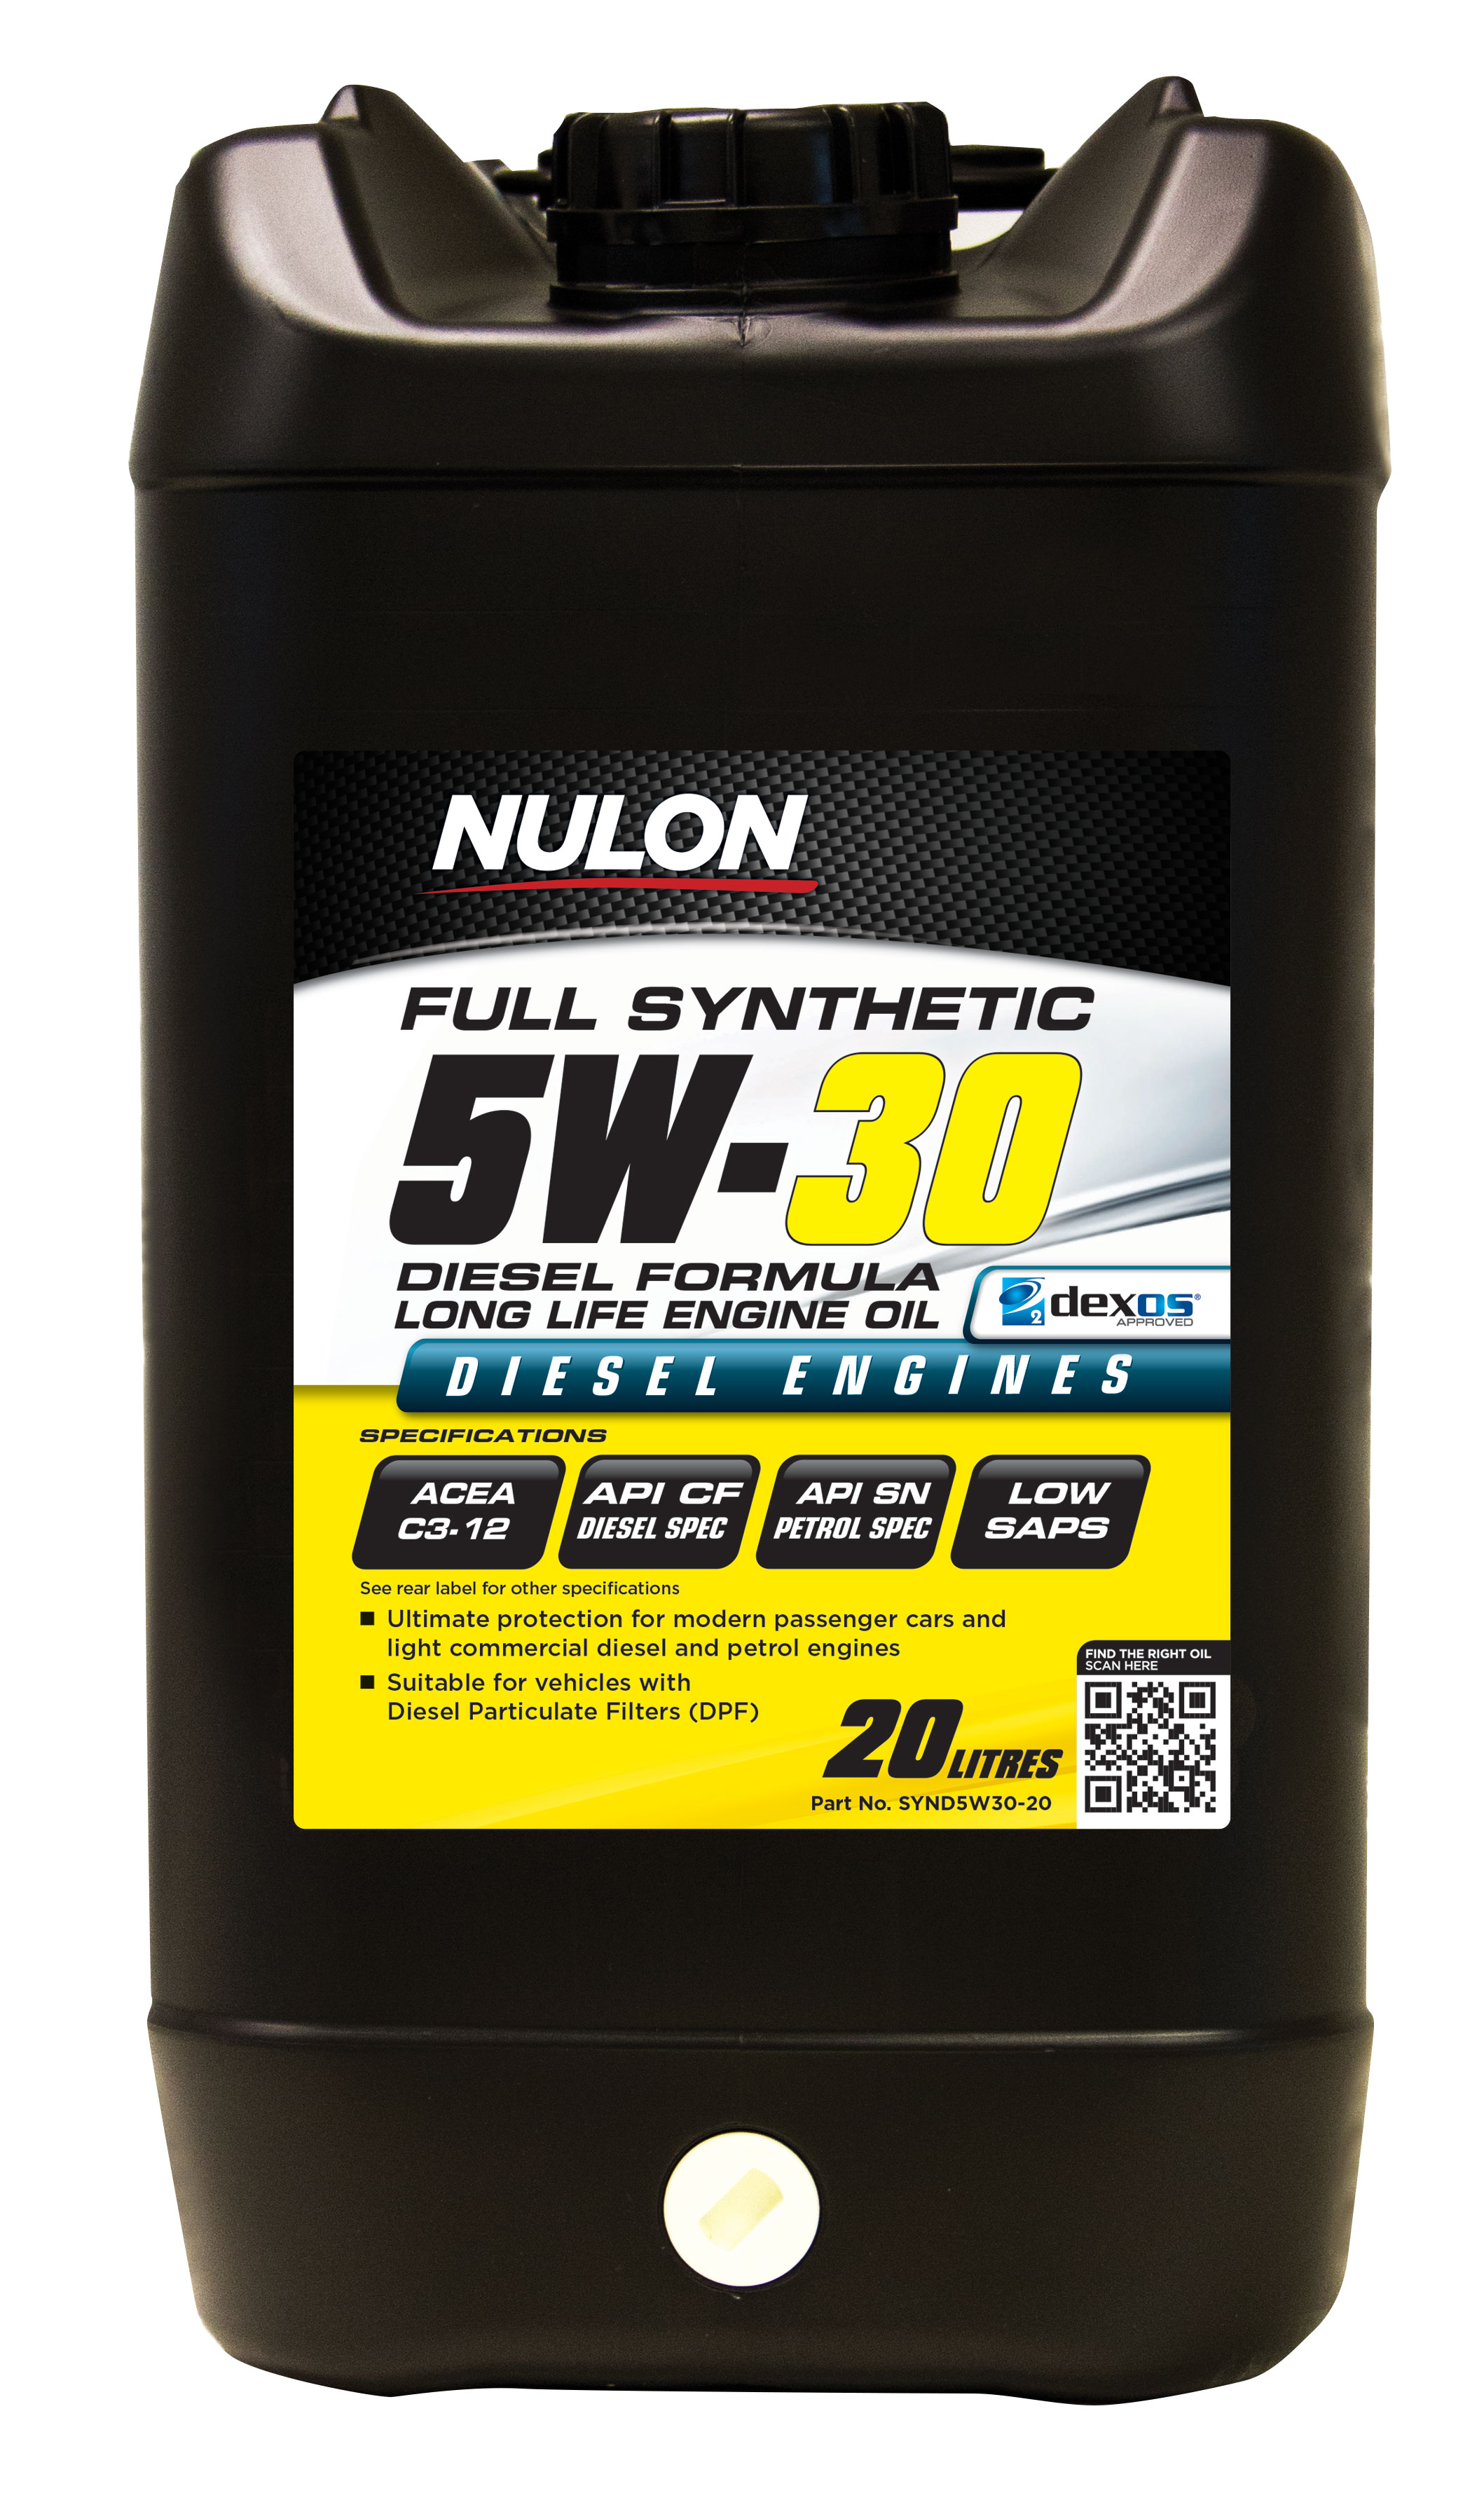 Nulon full synthetic 5w30 diesel formula long life engine for Life of synthetic motor oil